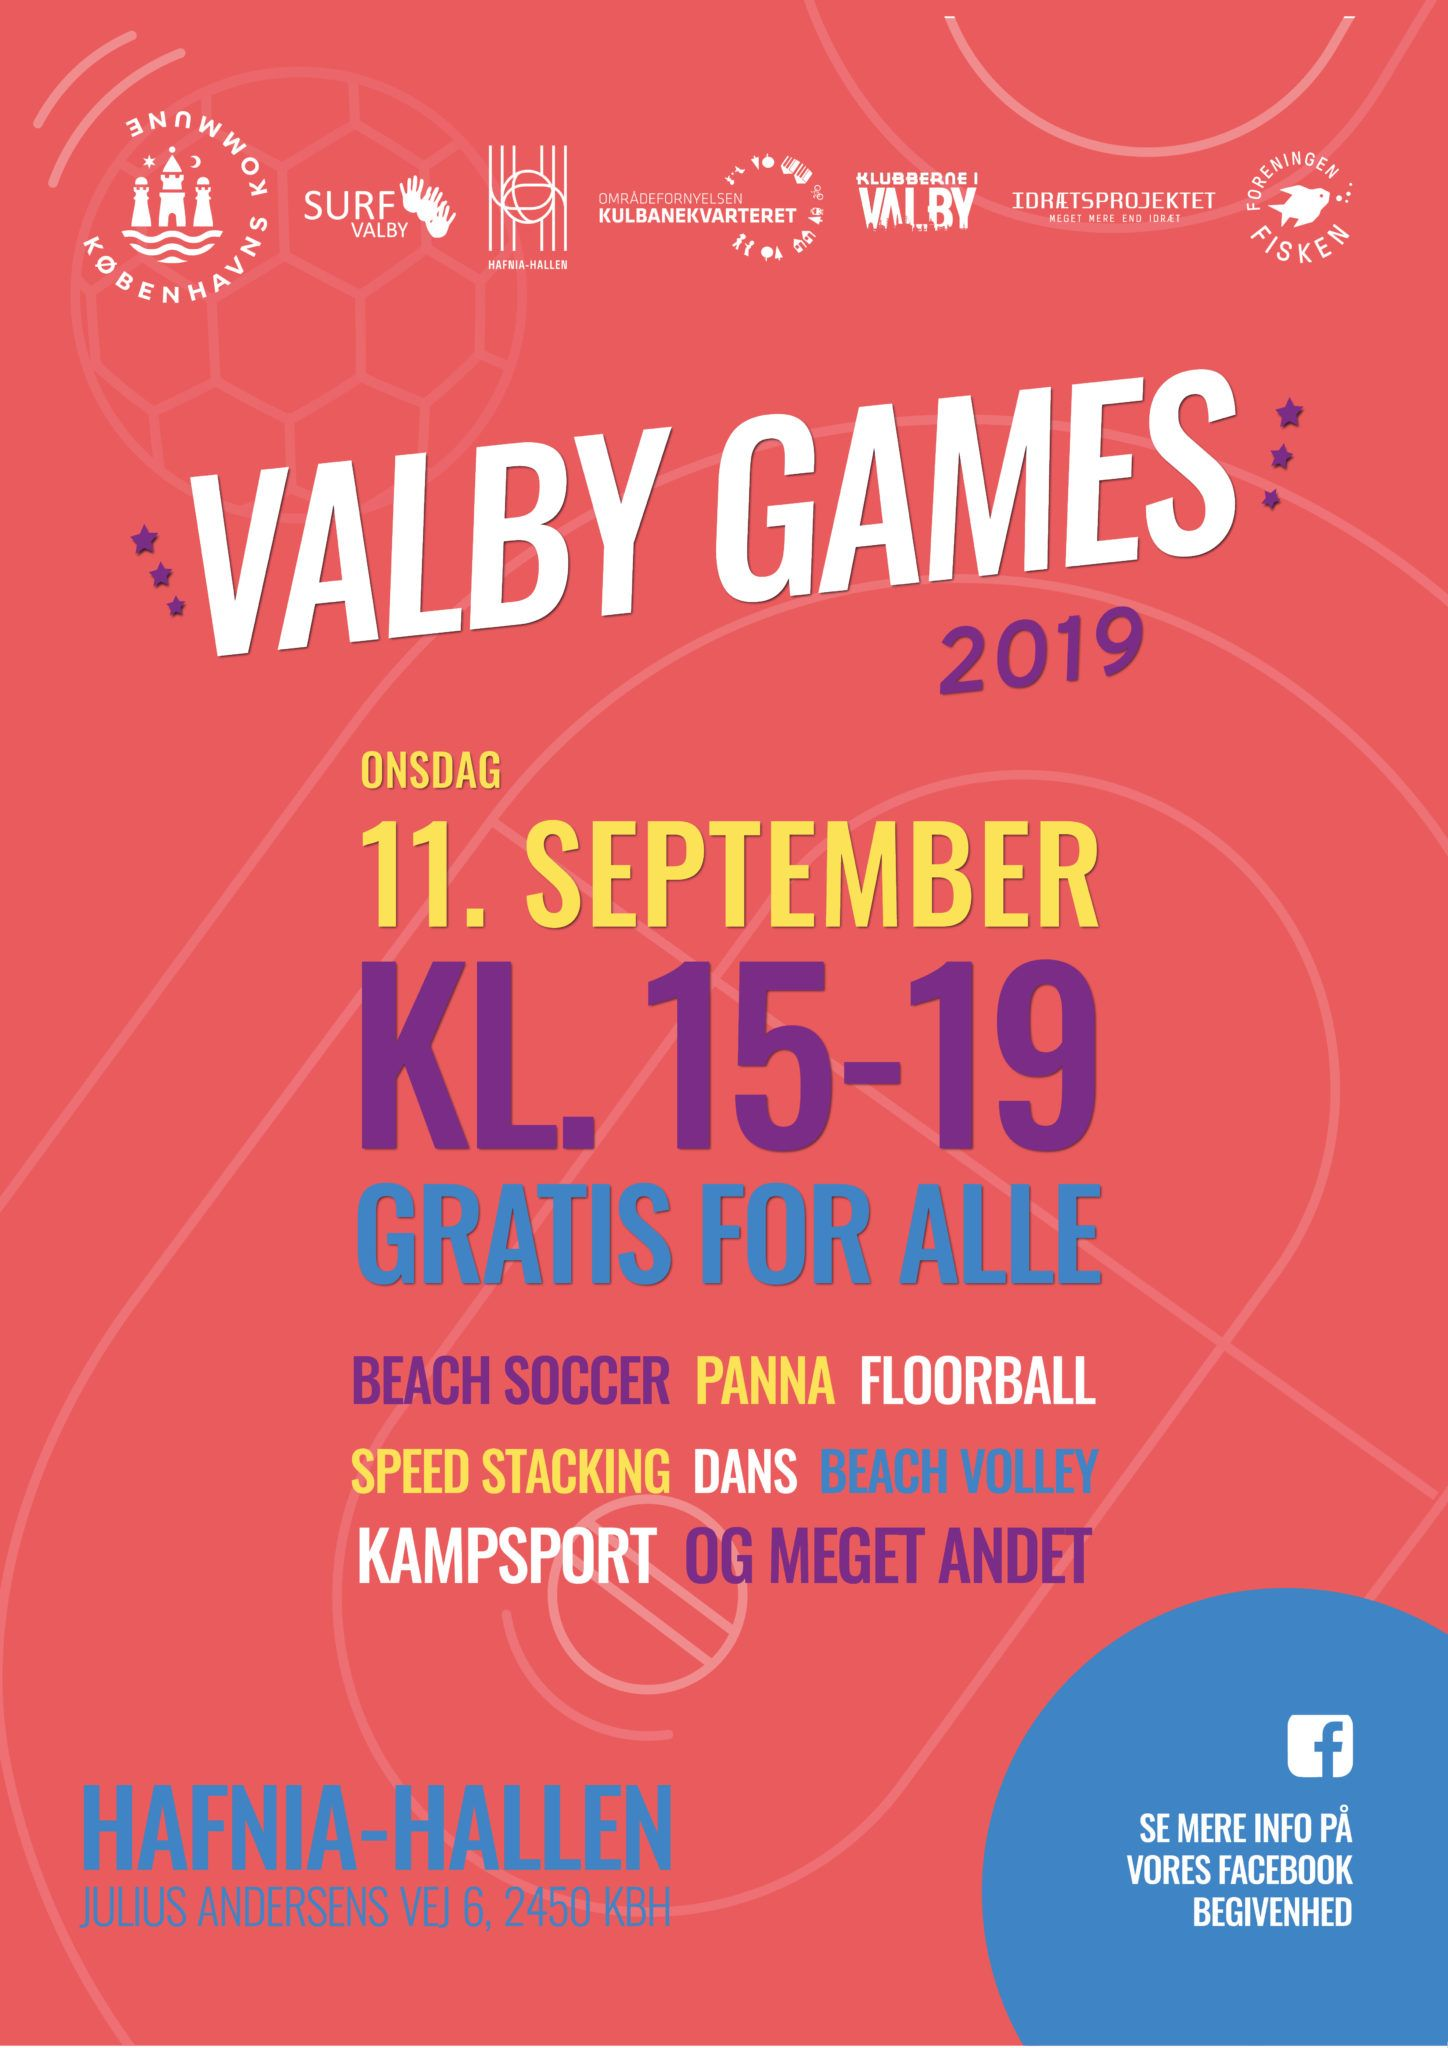 Valby Games plakat 2019 (002)